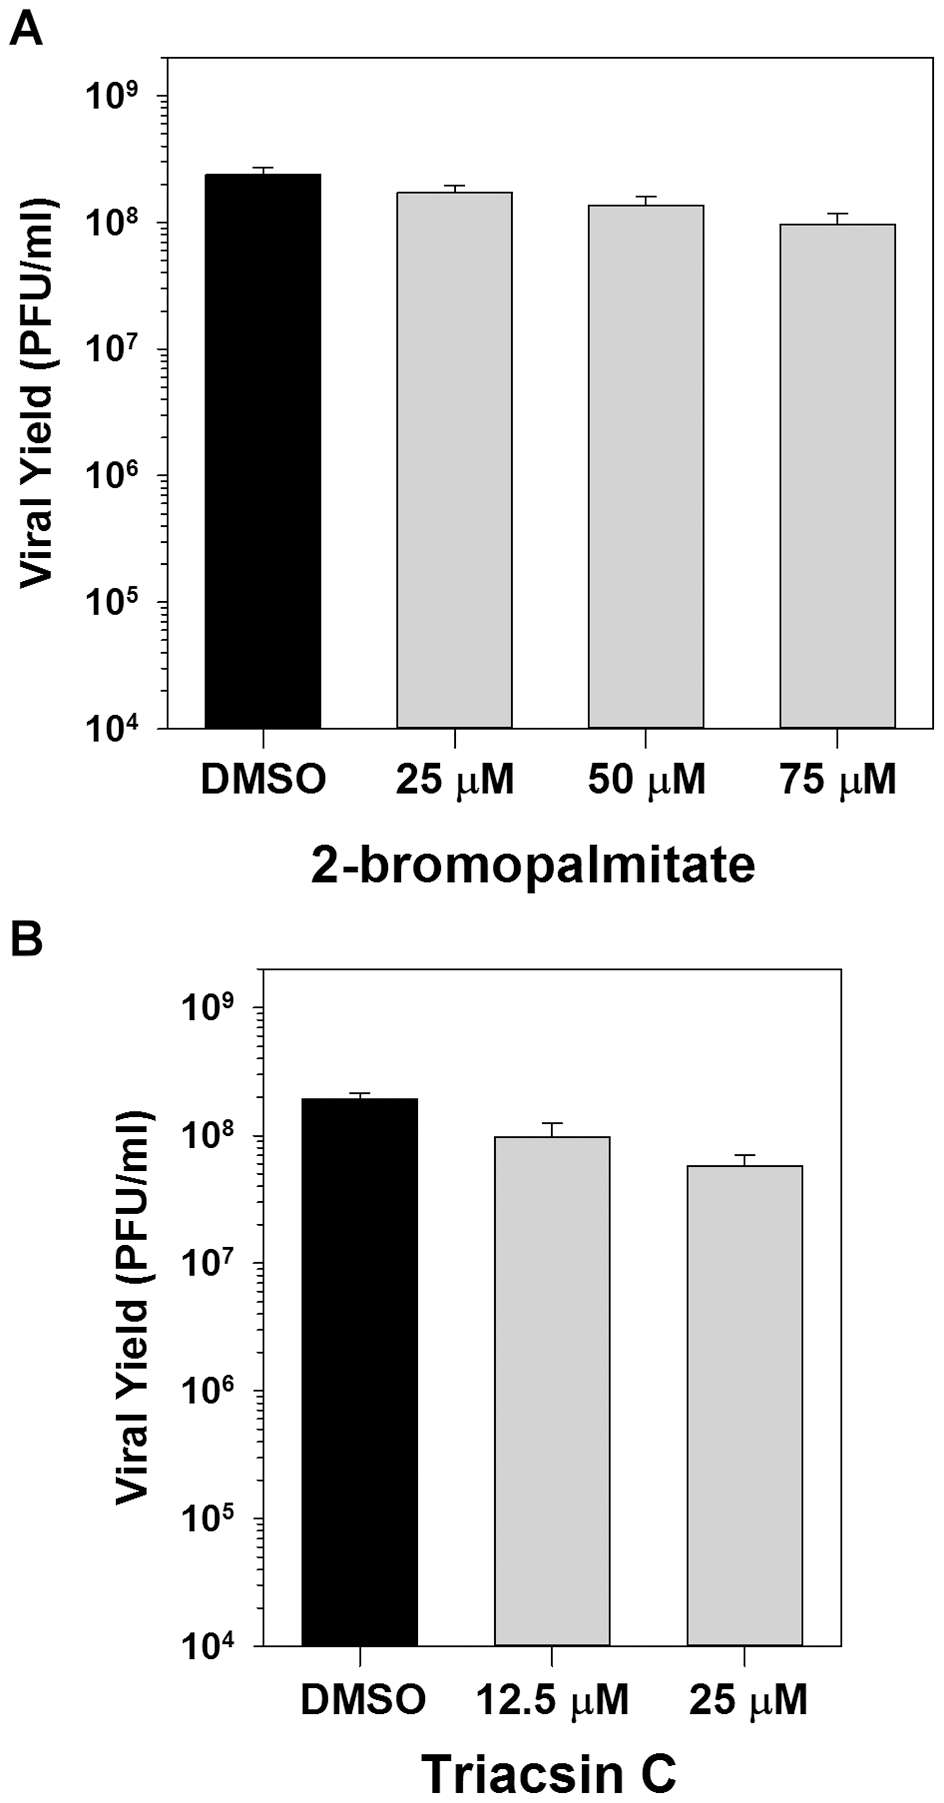 Inhibition of palmitoylation or phospholipid synthesis has no impact on viral replication.